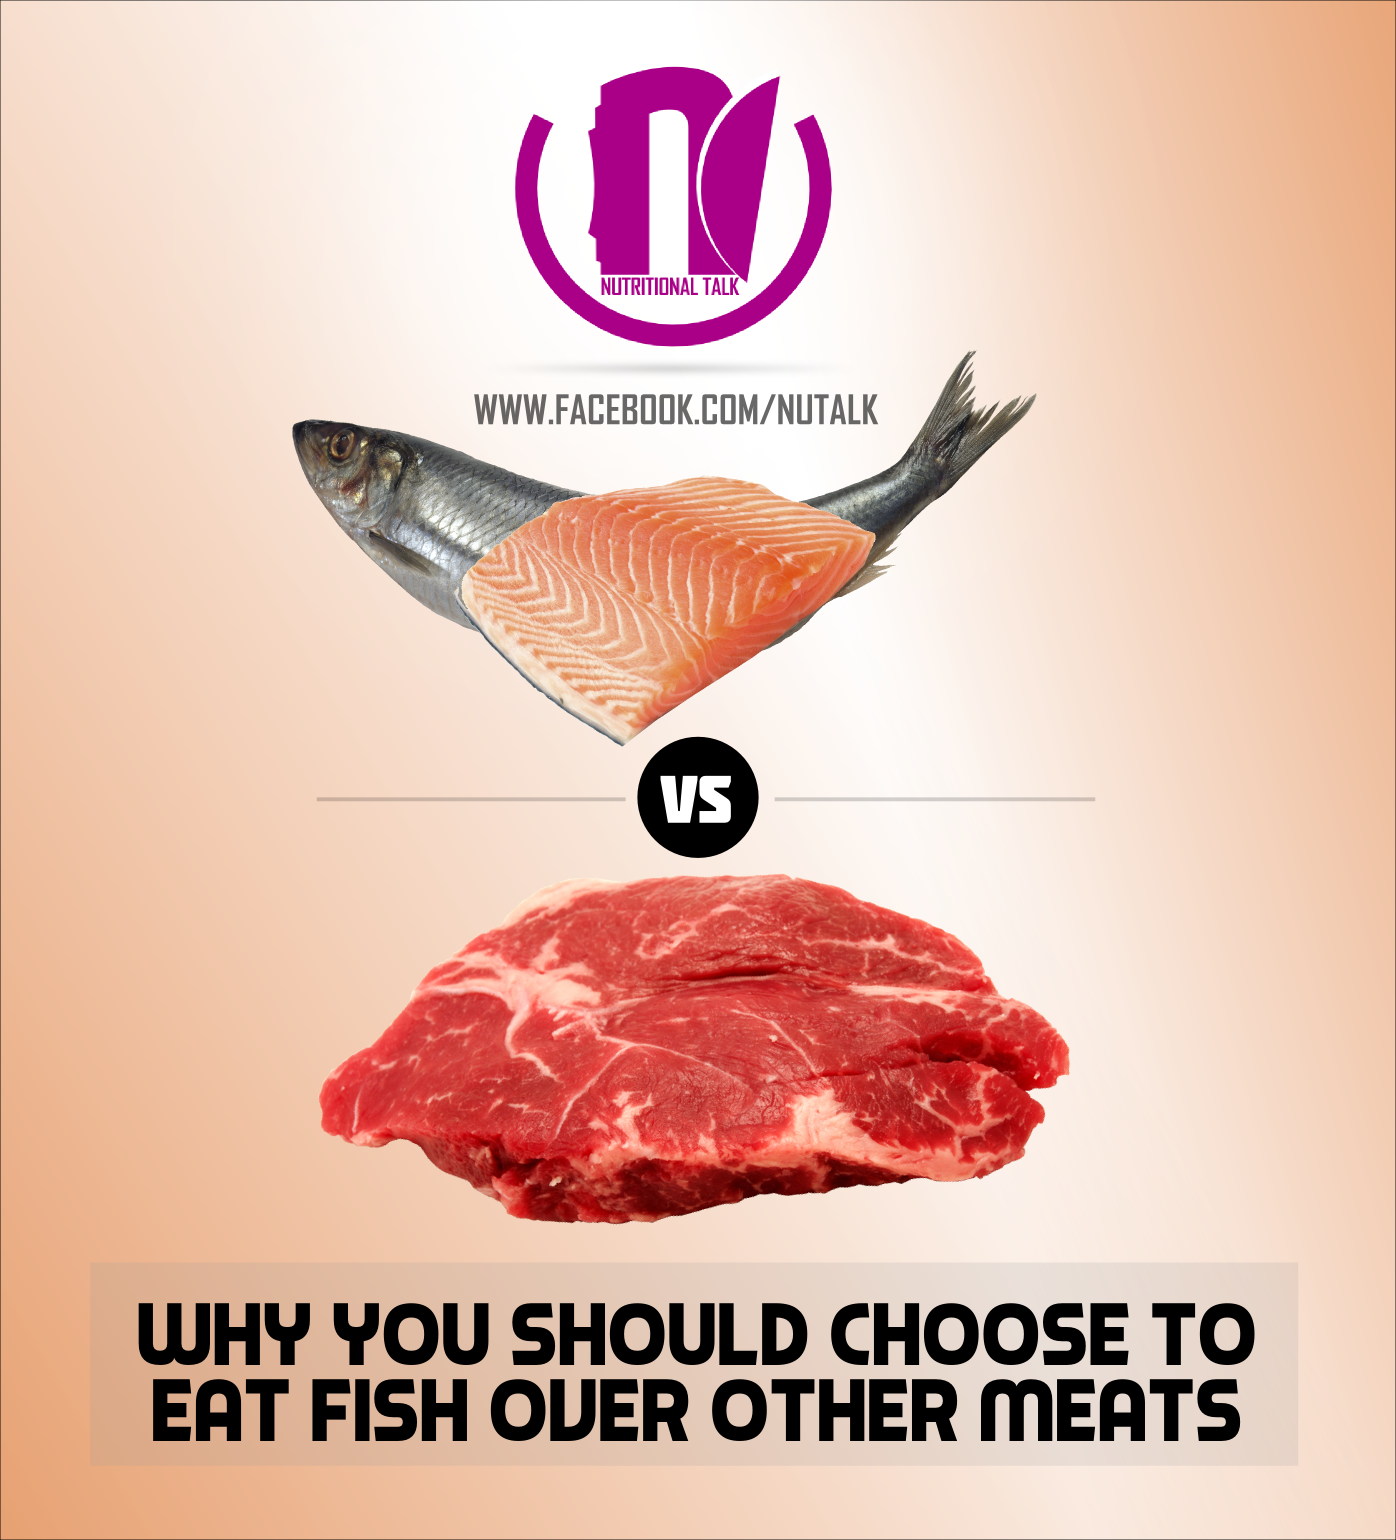 nwg works why you should choose to eat fish over other